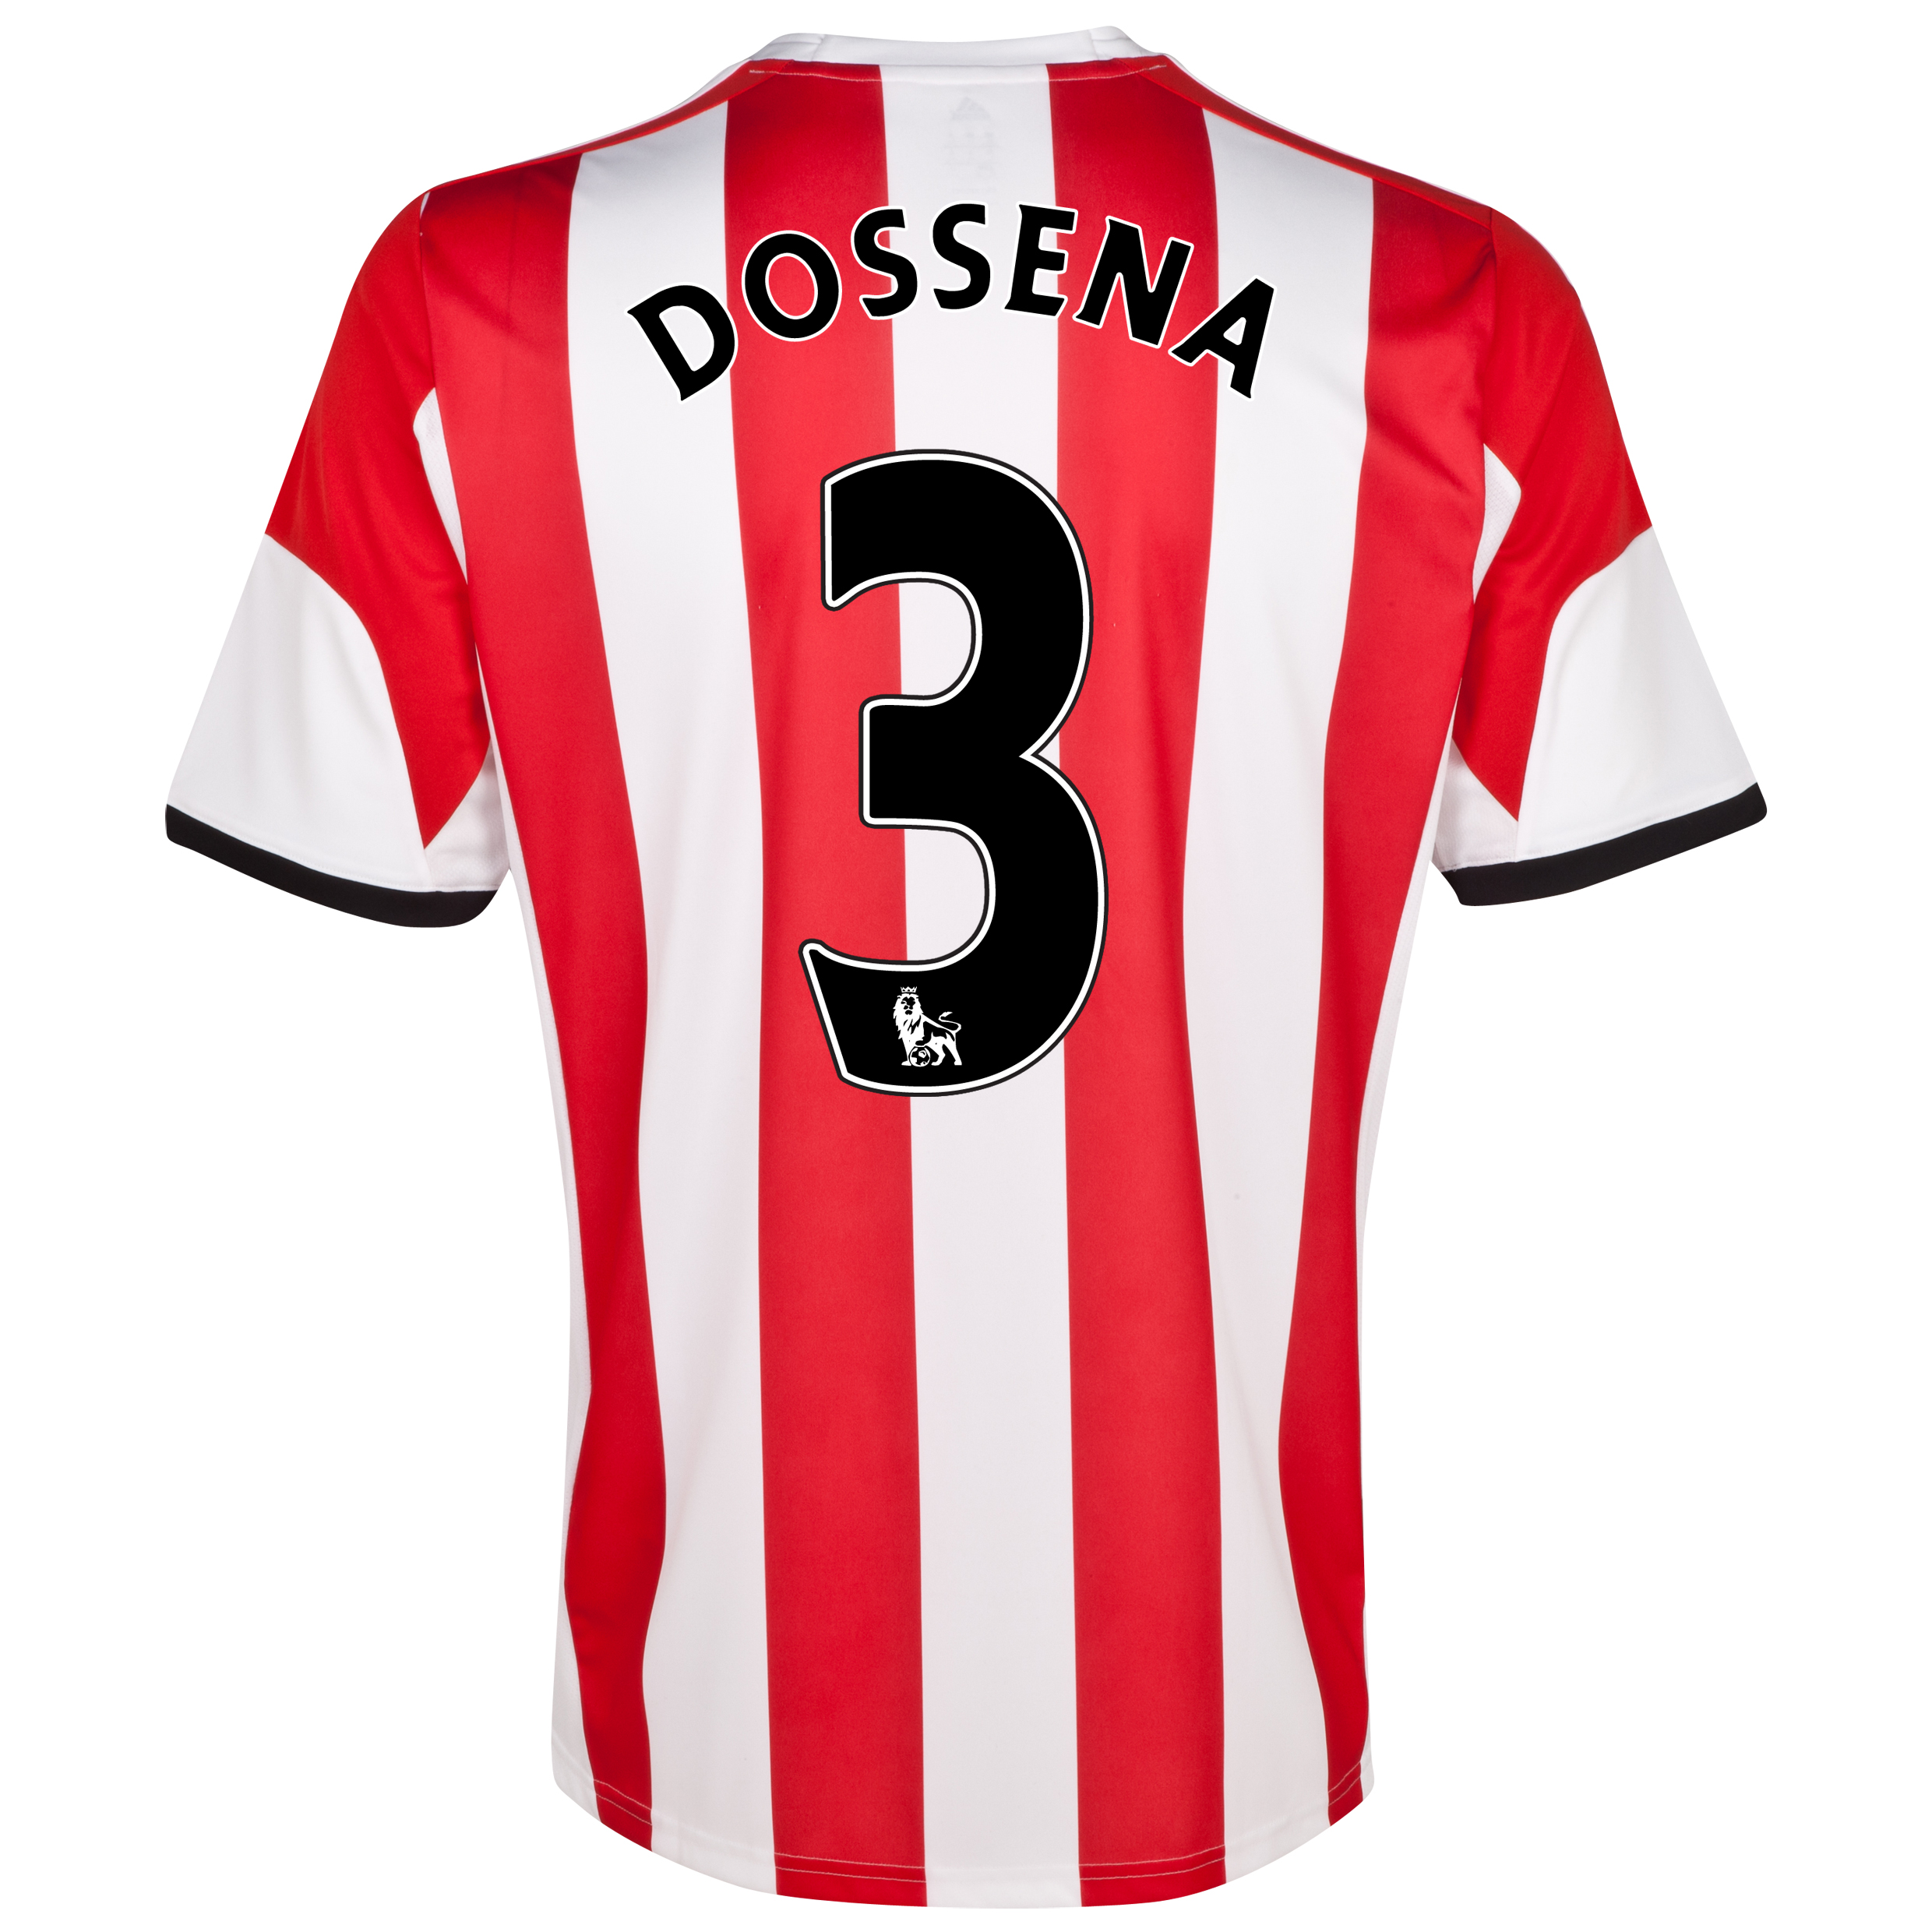 Sunderland Home Shirt 2013/14 - Junior with Dossena 3 printing